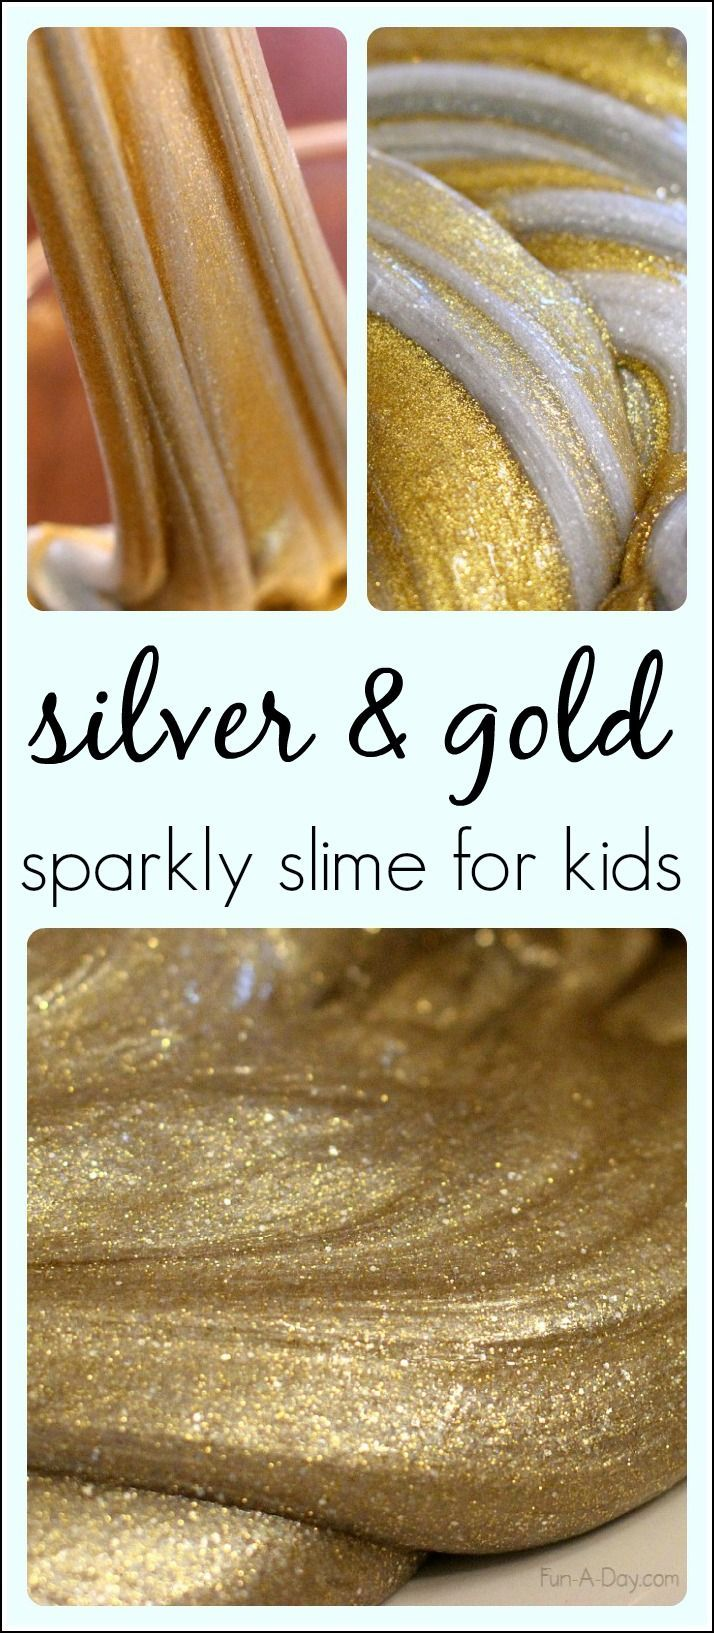 Come check out our awesome play space, toy library, and birthday party venue at www.toybraryaustin.com!  Here's the recipe: http://fun-a-day.com/silver-gold-homemade-slime-new-year/